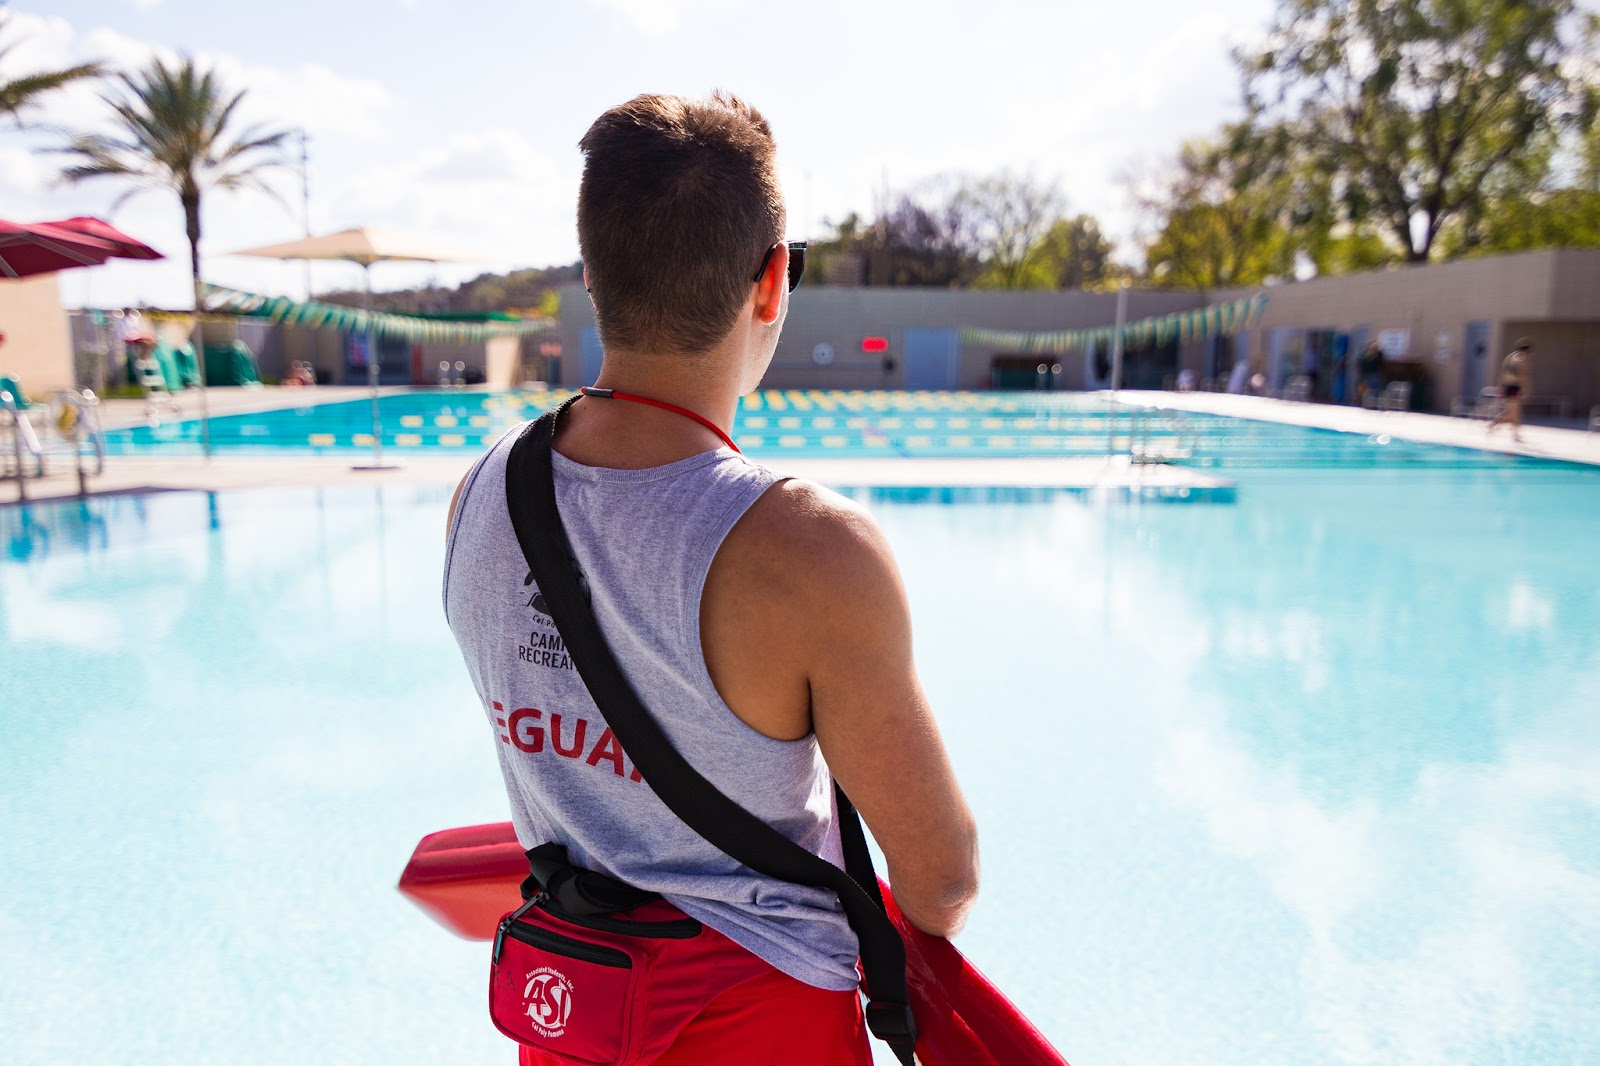 Lifeguard overlooking the BRIC pool